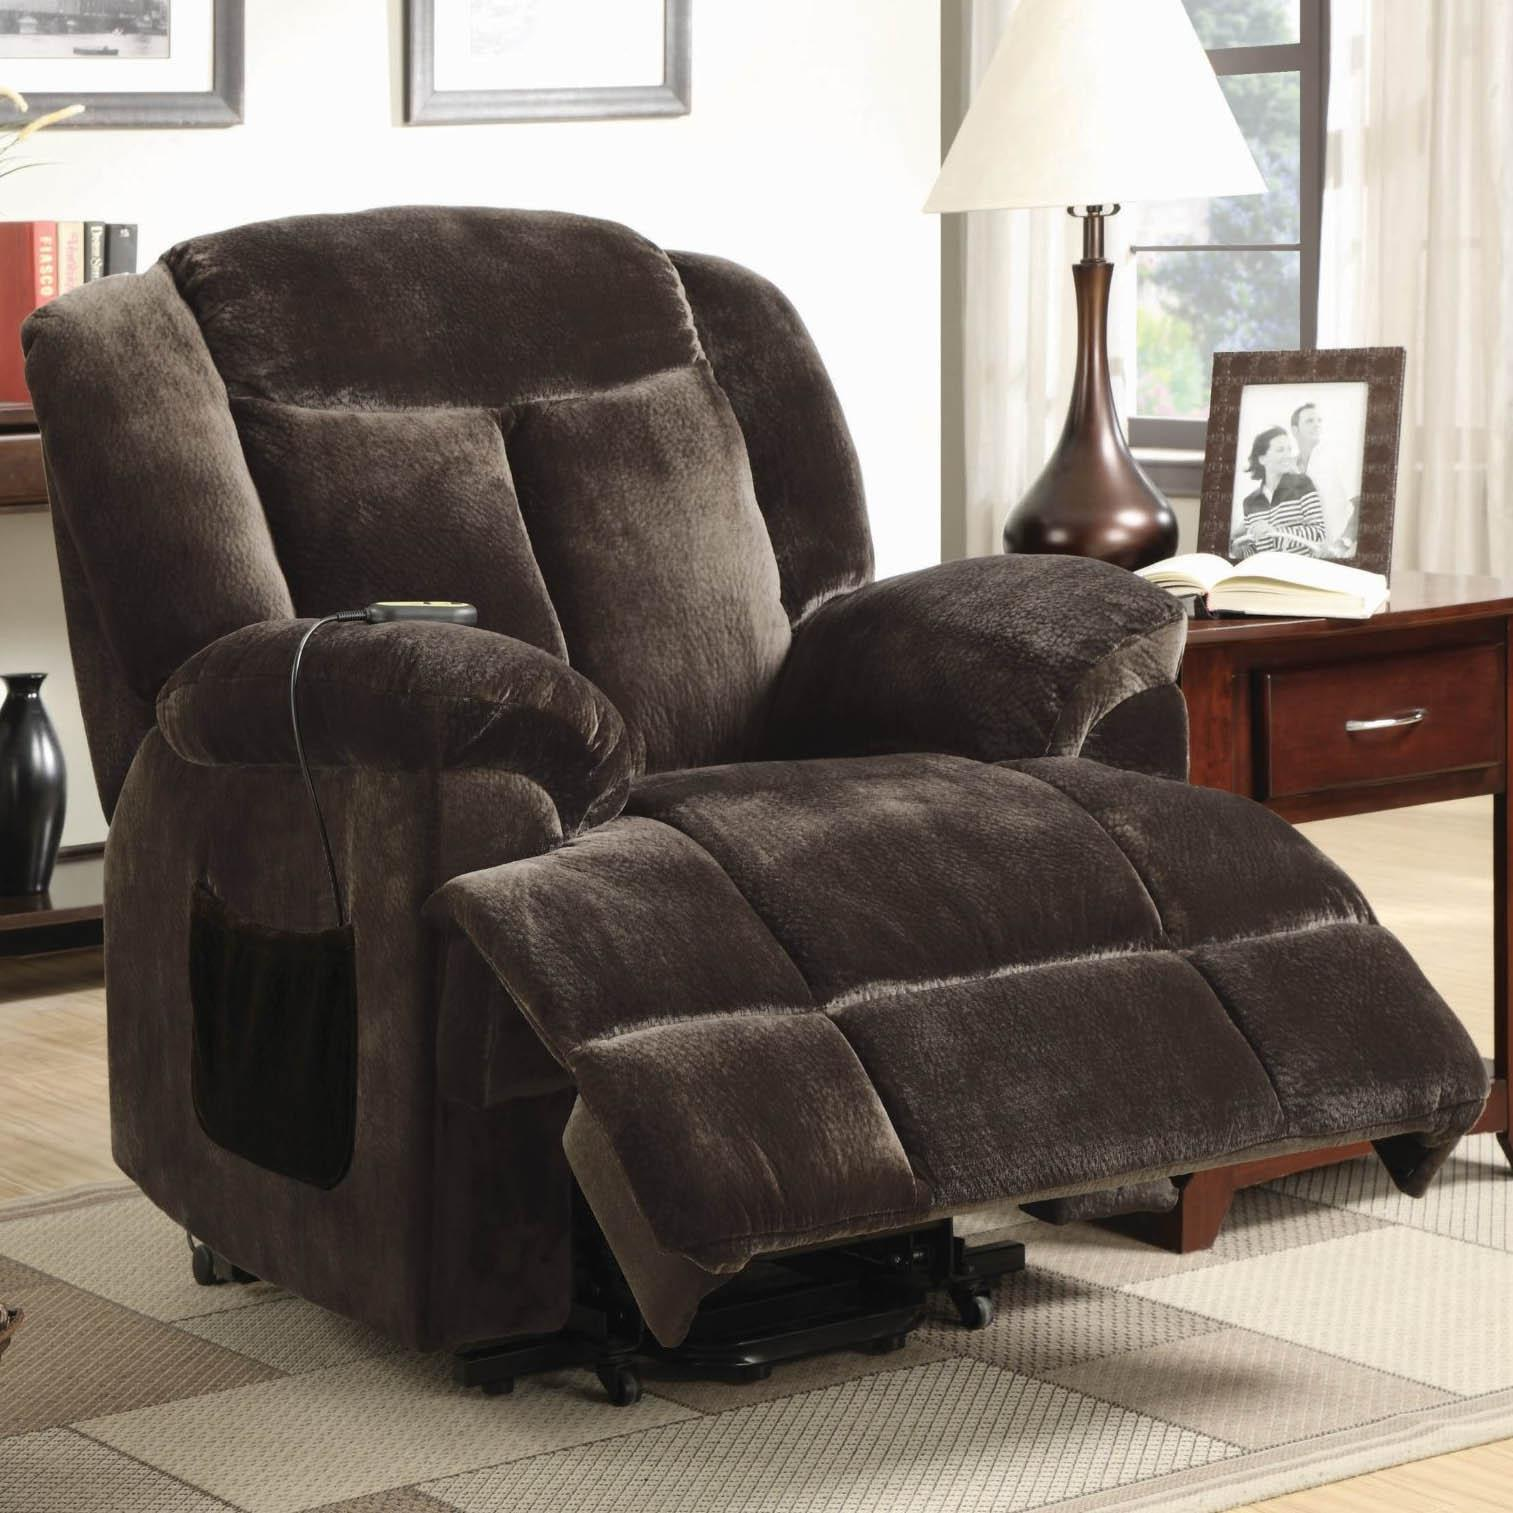 Coaster Recliners Casual Power Lift Recliner With